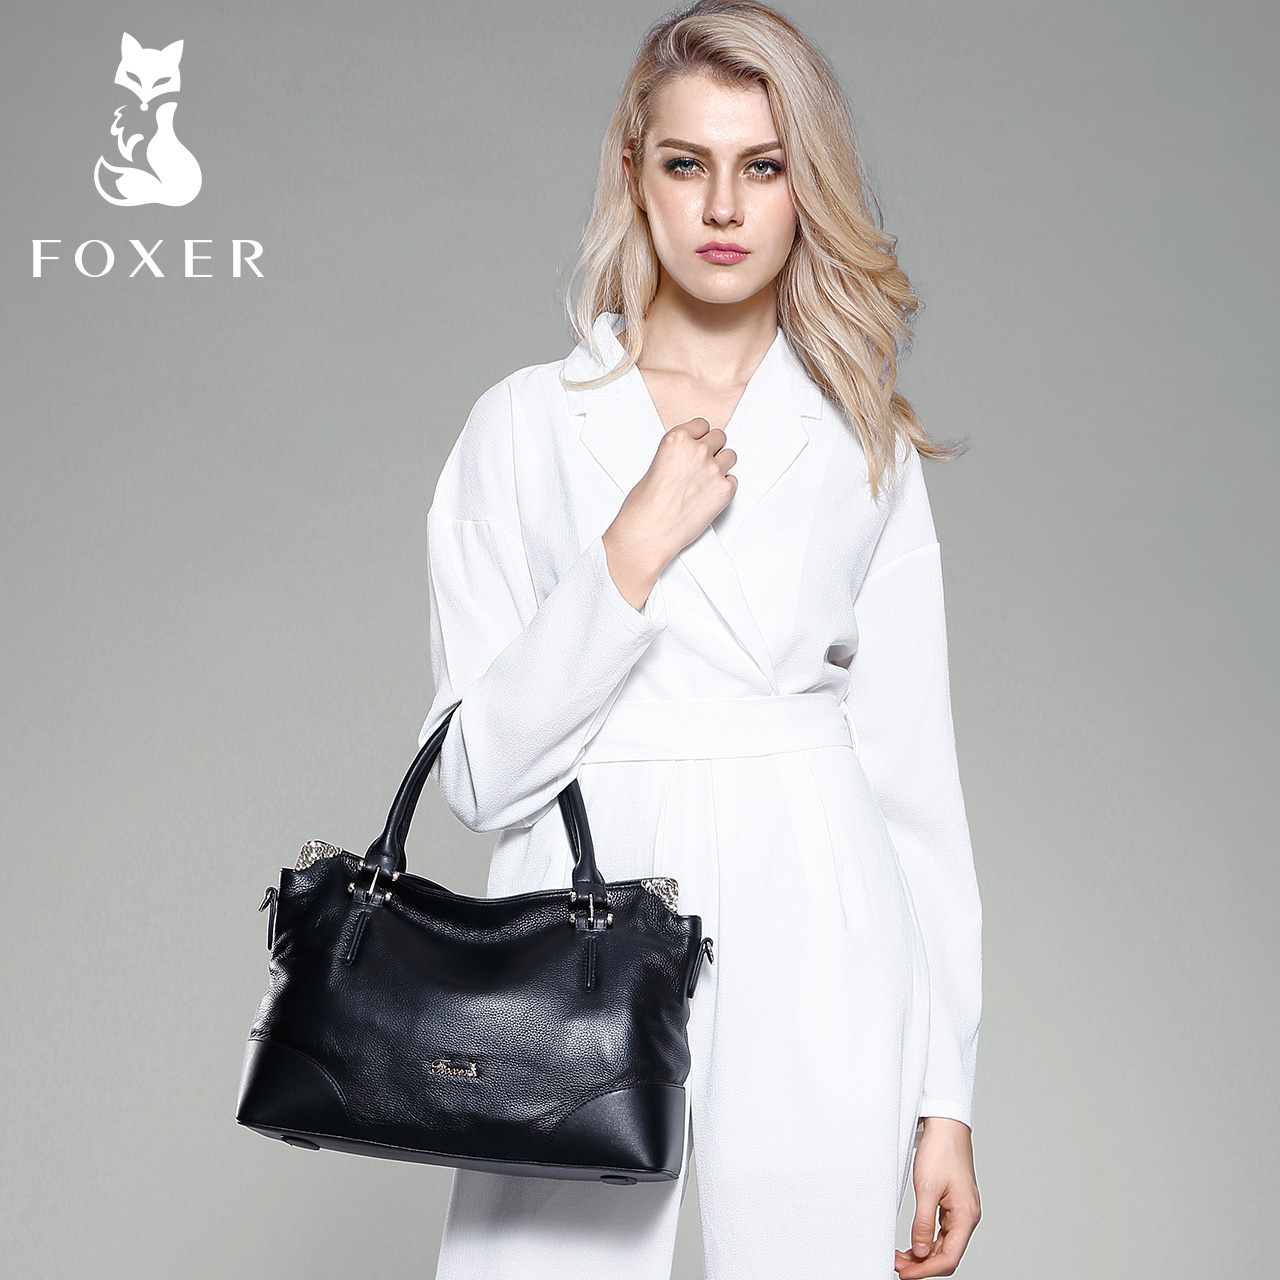 Gold Fox leather women's Pack spring and summer new fashion head layer leather tote bag women's single shoulder bag large bag